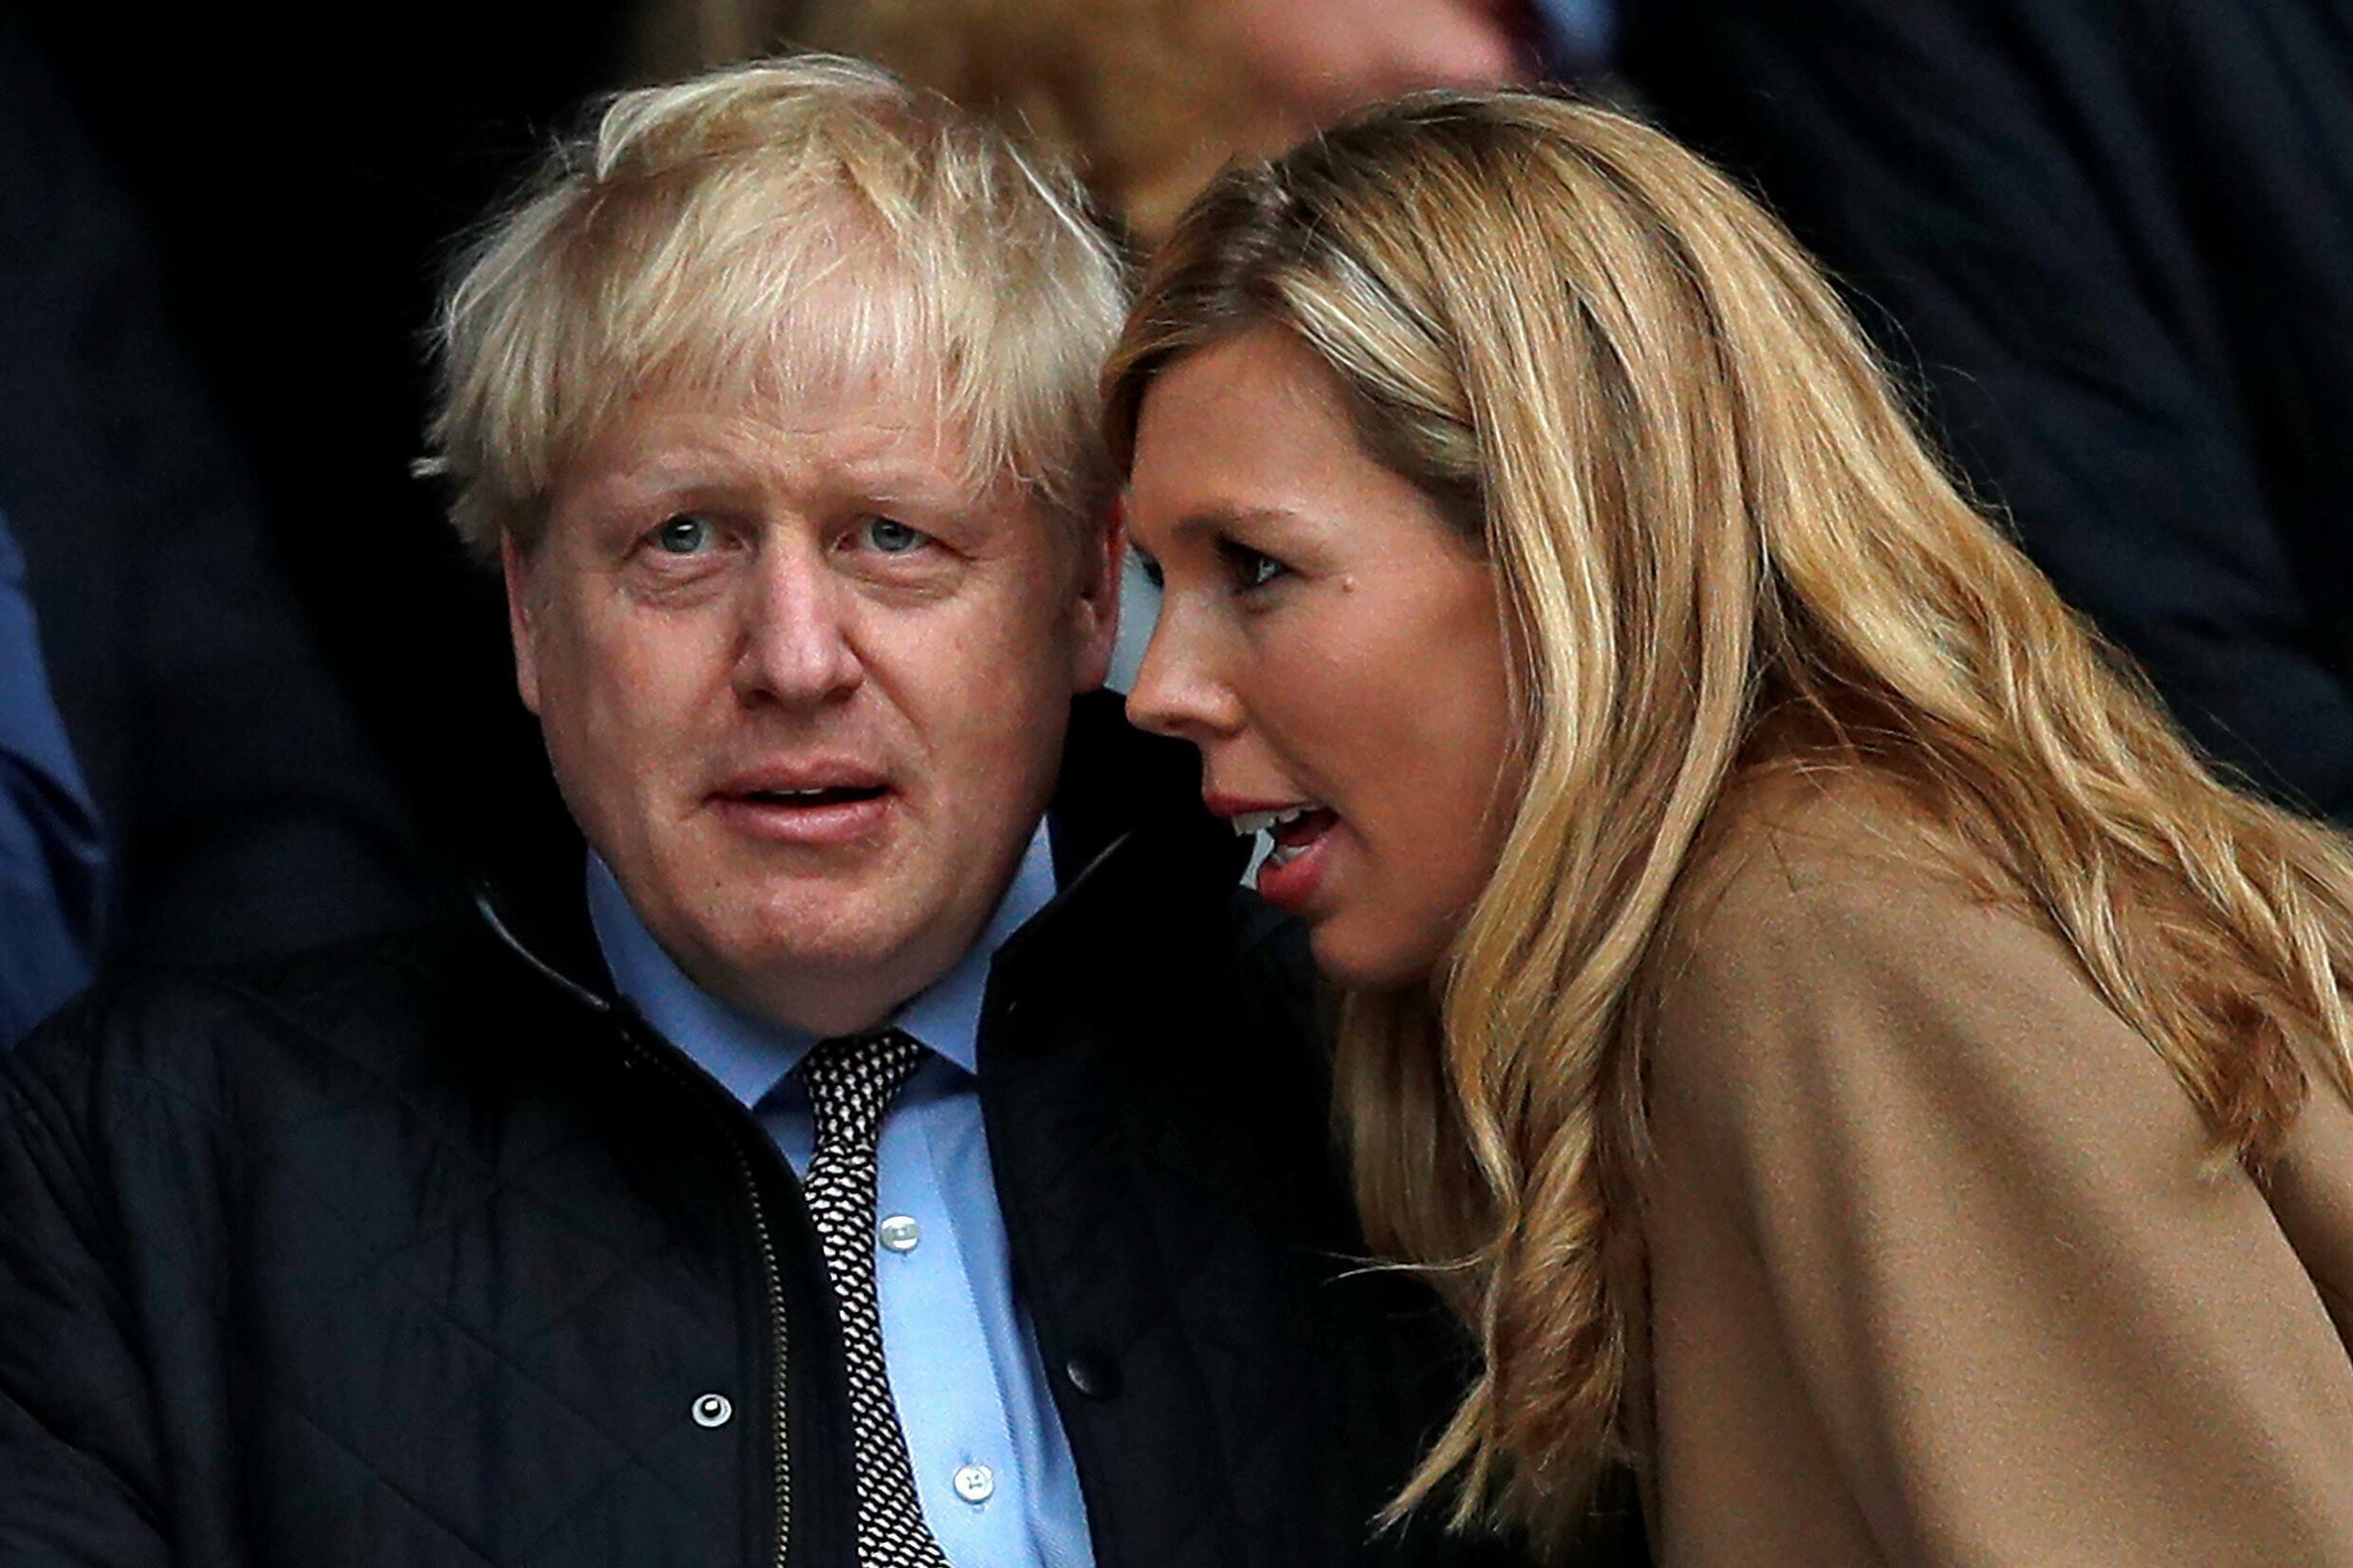 The 56-year-old Boris Johnson and his fiancee Carrie Symonds, 33, shown here in March 2020, wed in front of close friends and family